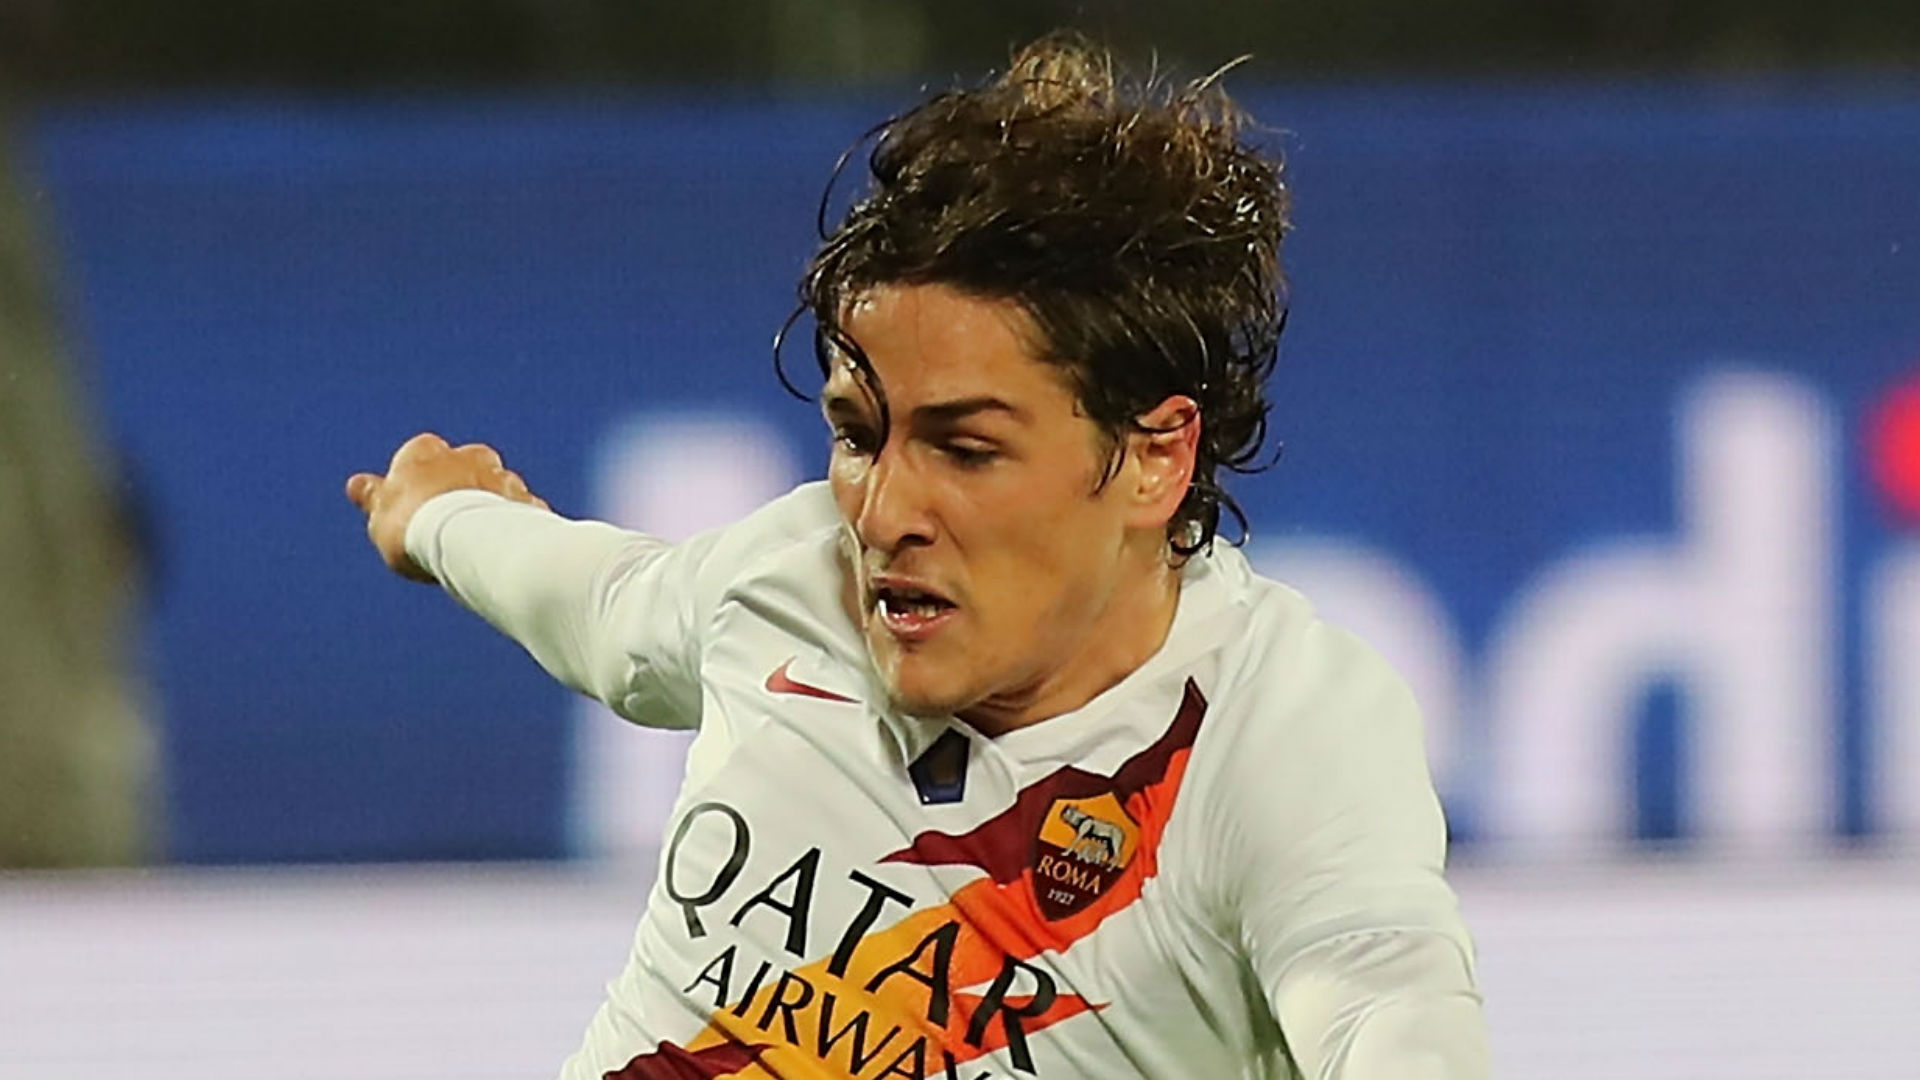 Roma and Italy star Zaniolo suffers ruptured ACL